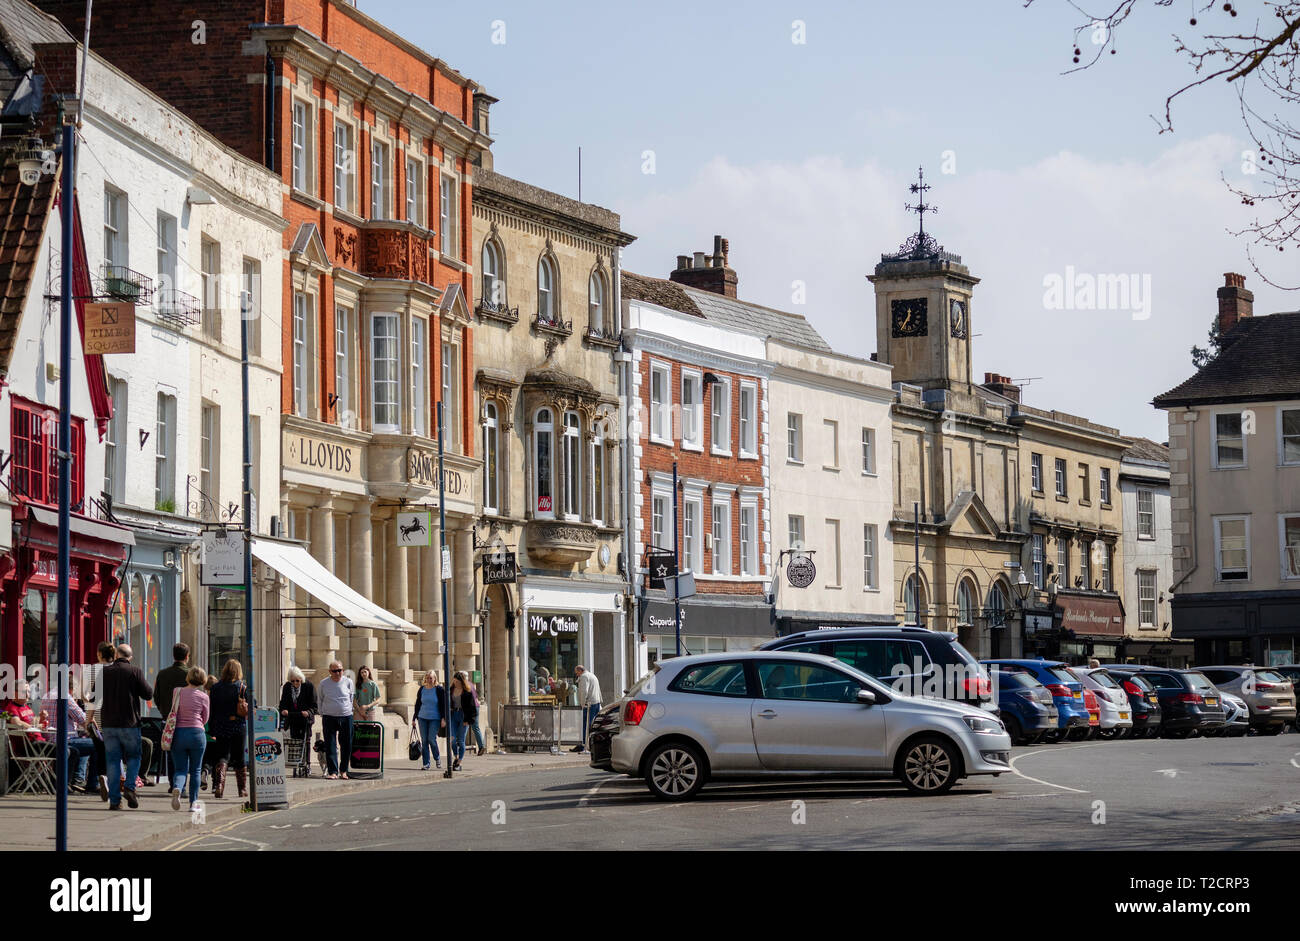 Devizes, Wiltshire,England, UK. March 2019. Business buildings on Market Square in Devizes a market town. - Stock Image